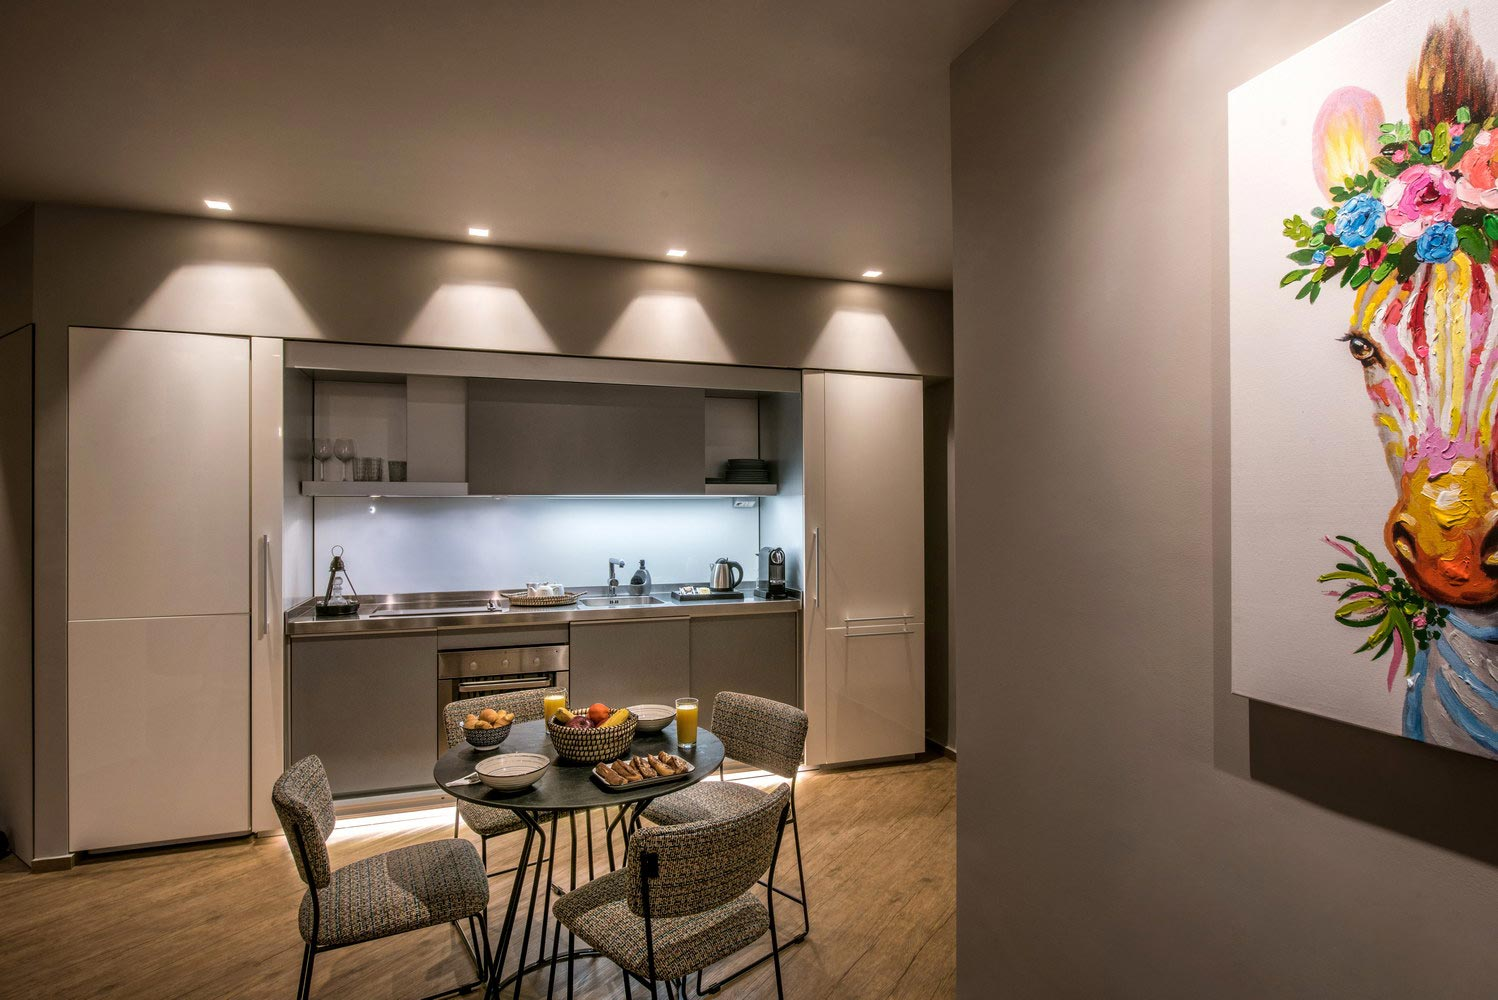 Cozy Airbnb Apartment | Architectural Study Heraklion ...